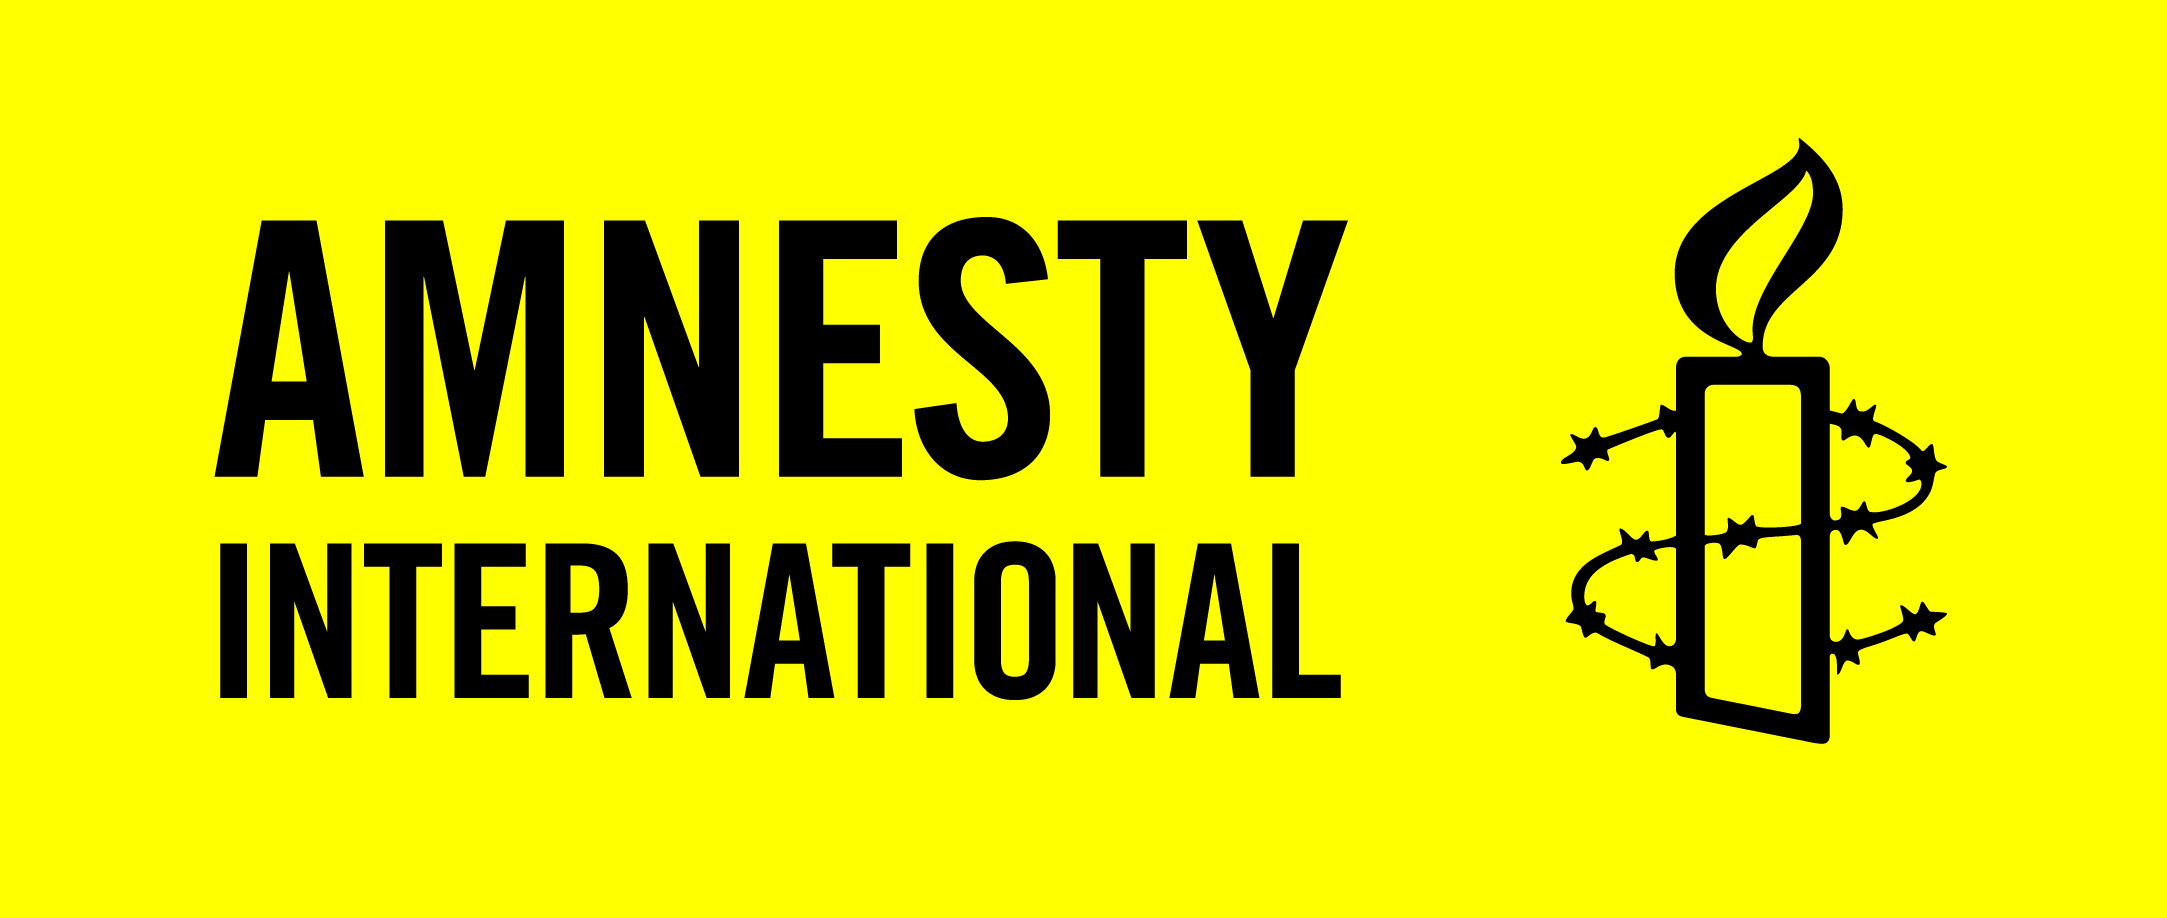 Amnesty - CRM Manager